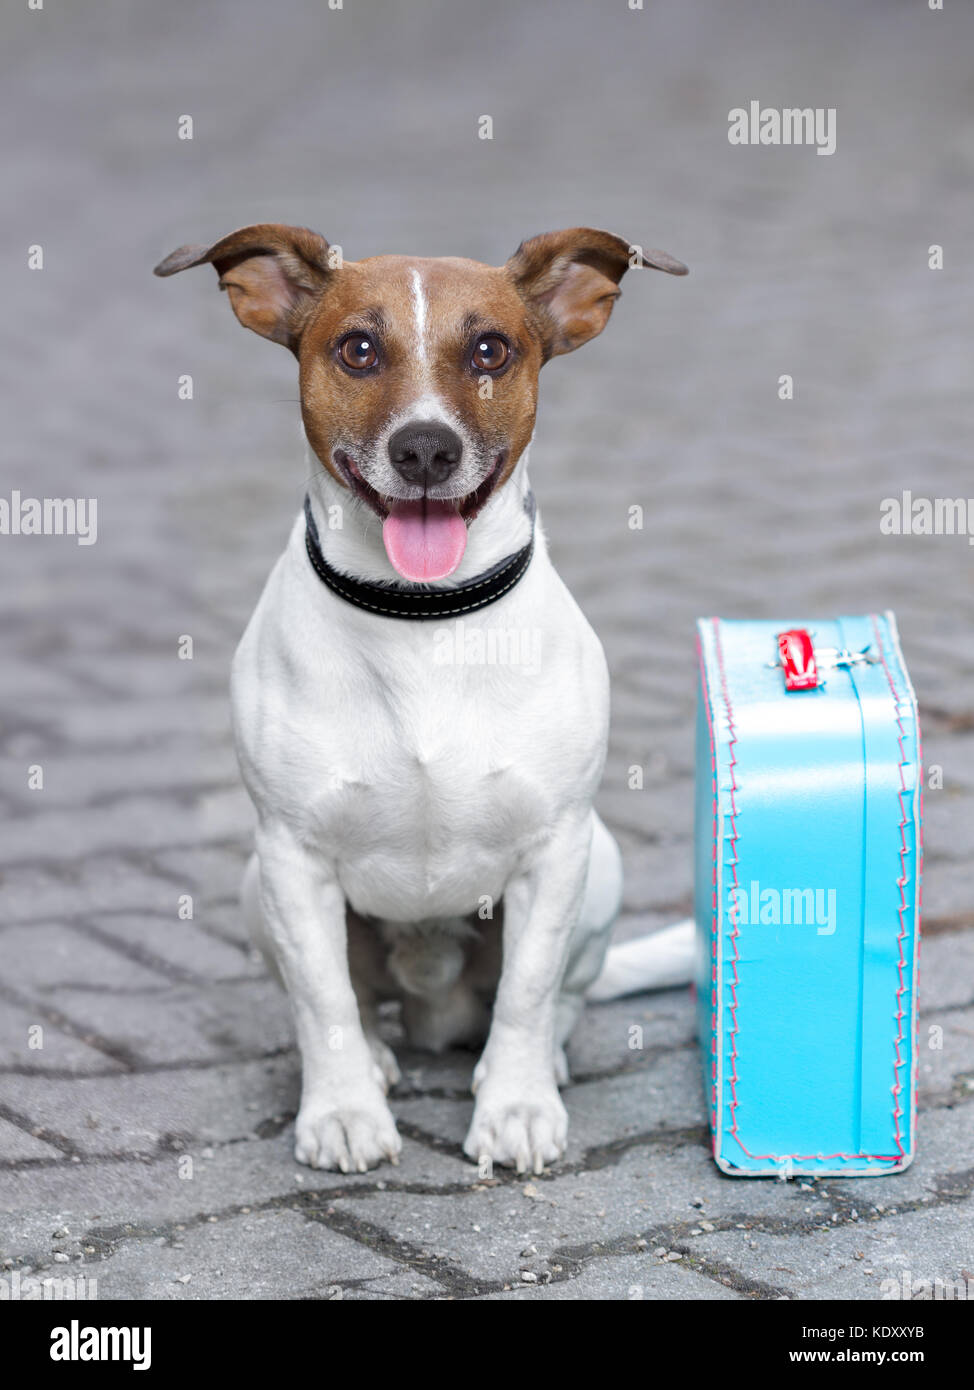 vacation dog waiting outside ready to depart with luggage - Stock Image